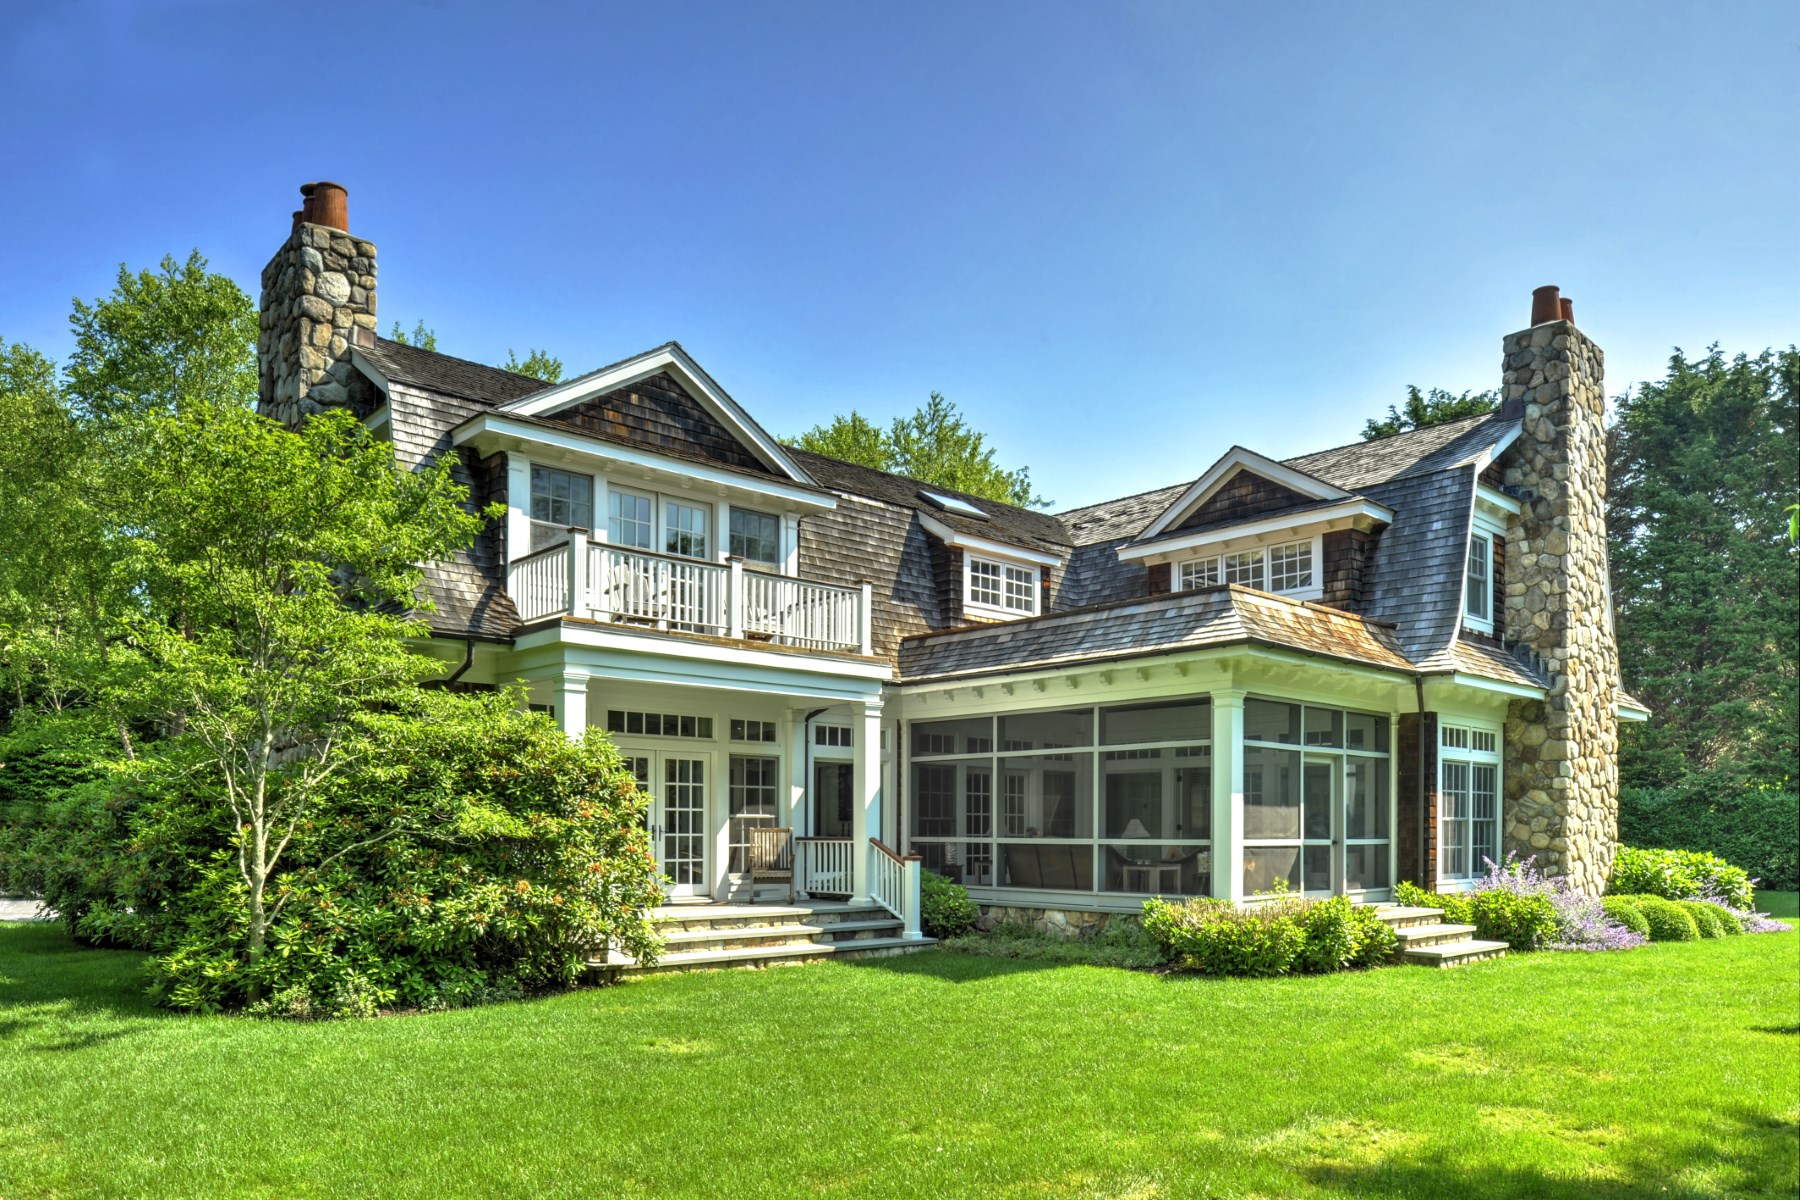 Vivienda unifamiliar por un Venta en Gorgeous Georgica Estate Home 11 Jericho Lane, East Hampton Village, East Hampton, Nueva York, 11937 Estados Unidos